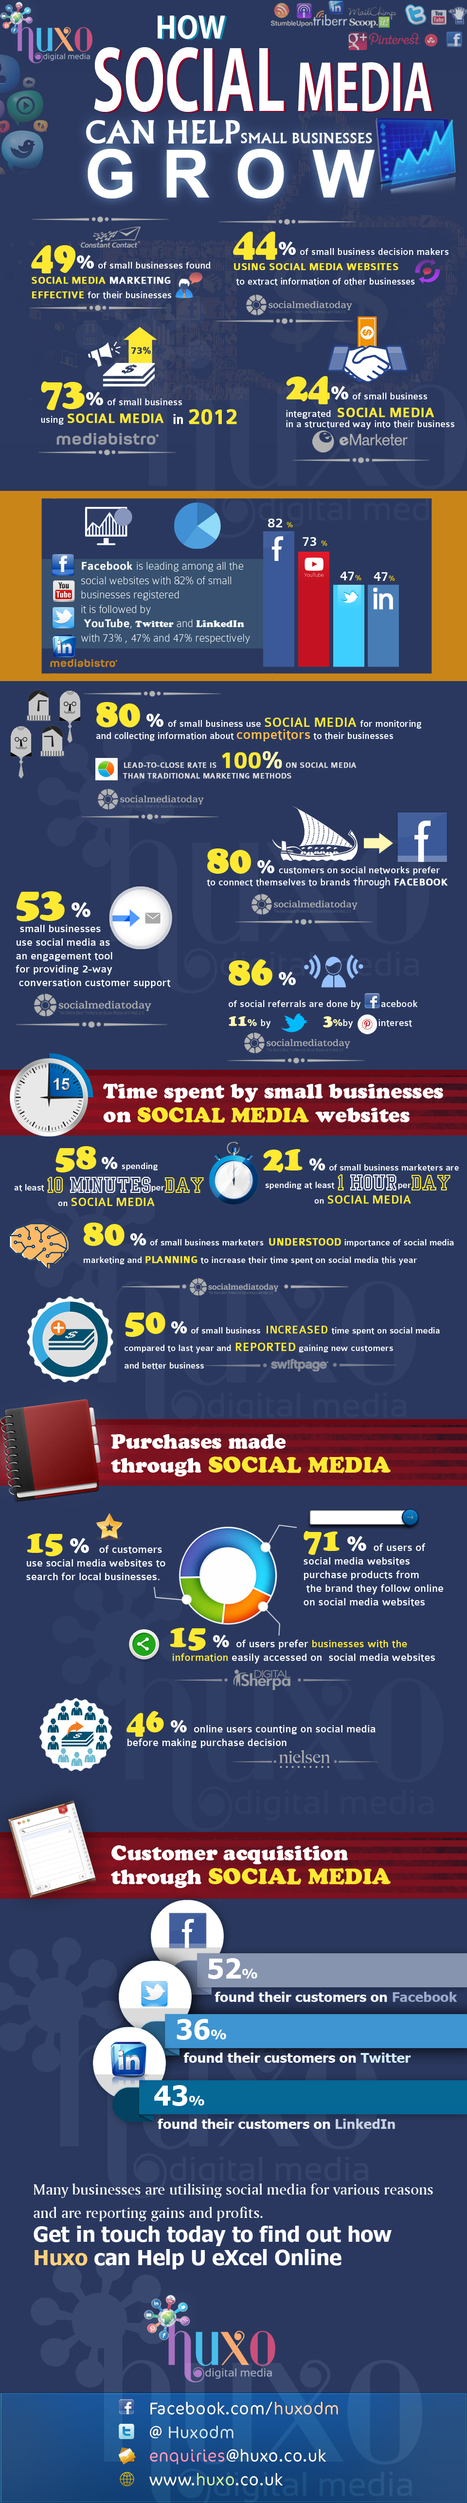 Social Media Statistics for Small Businesses: Infographic | Educational Use of Social Media | Scoop.it